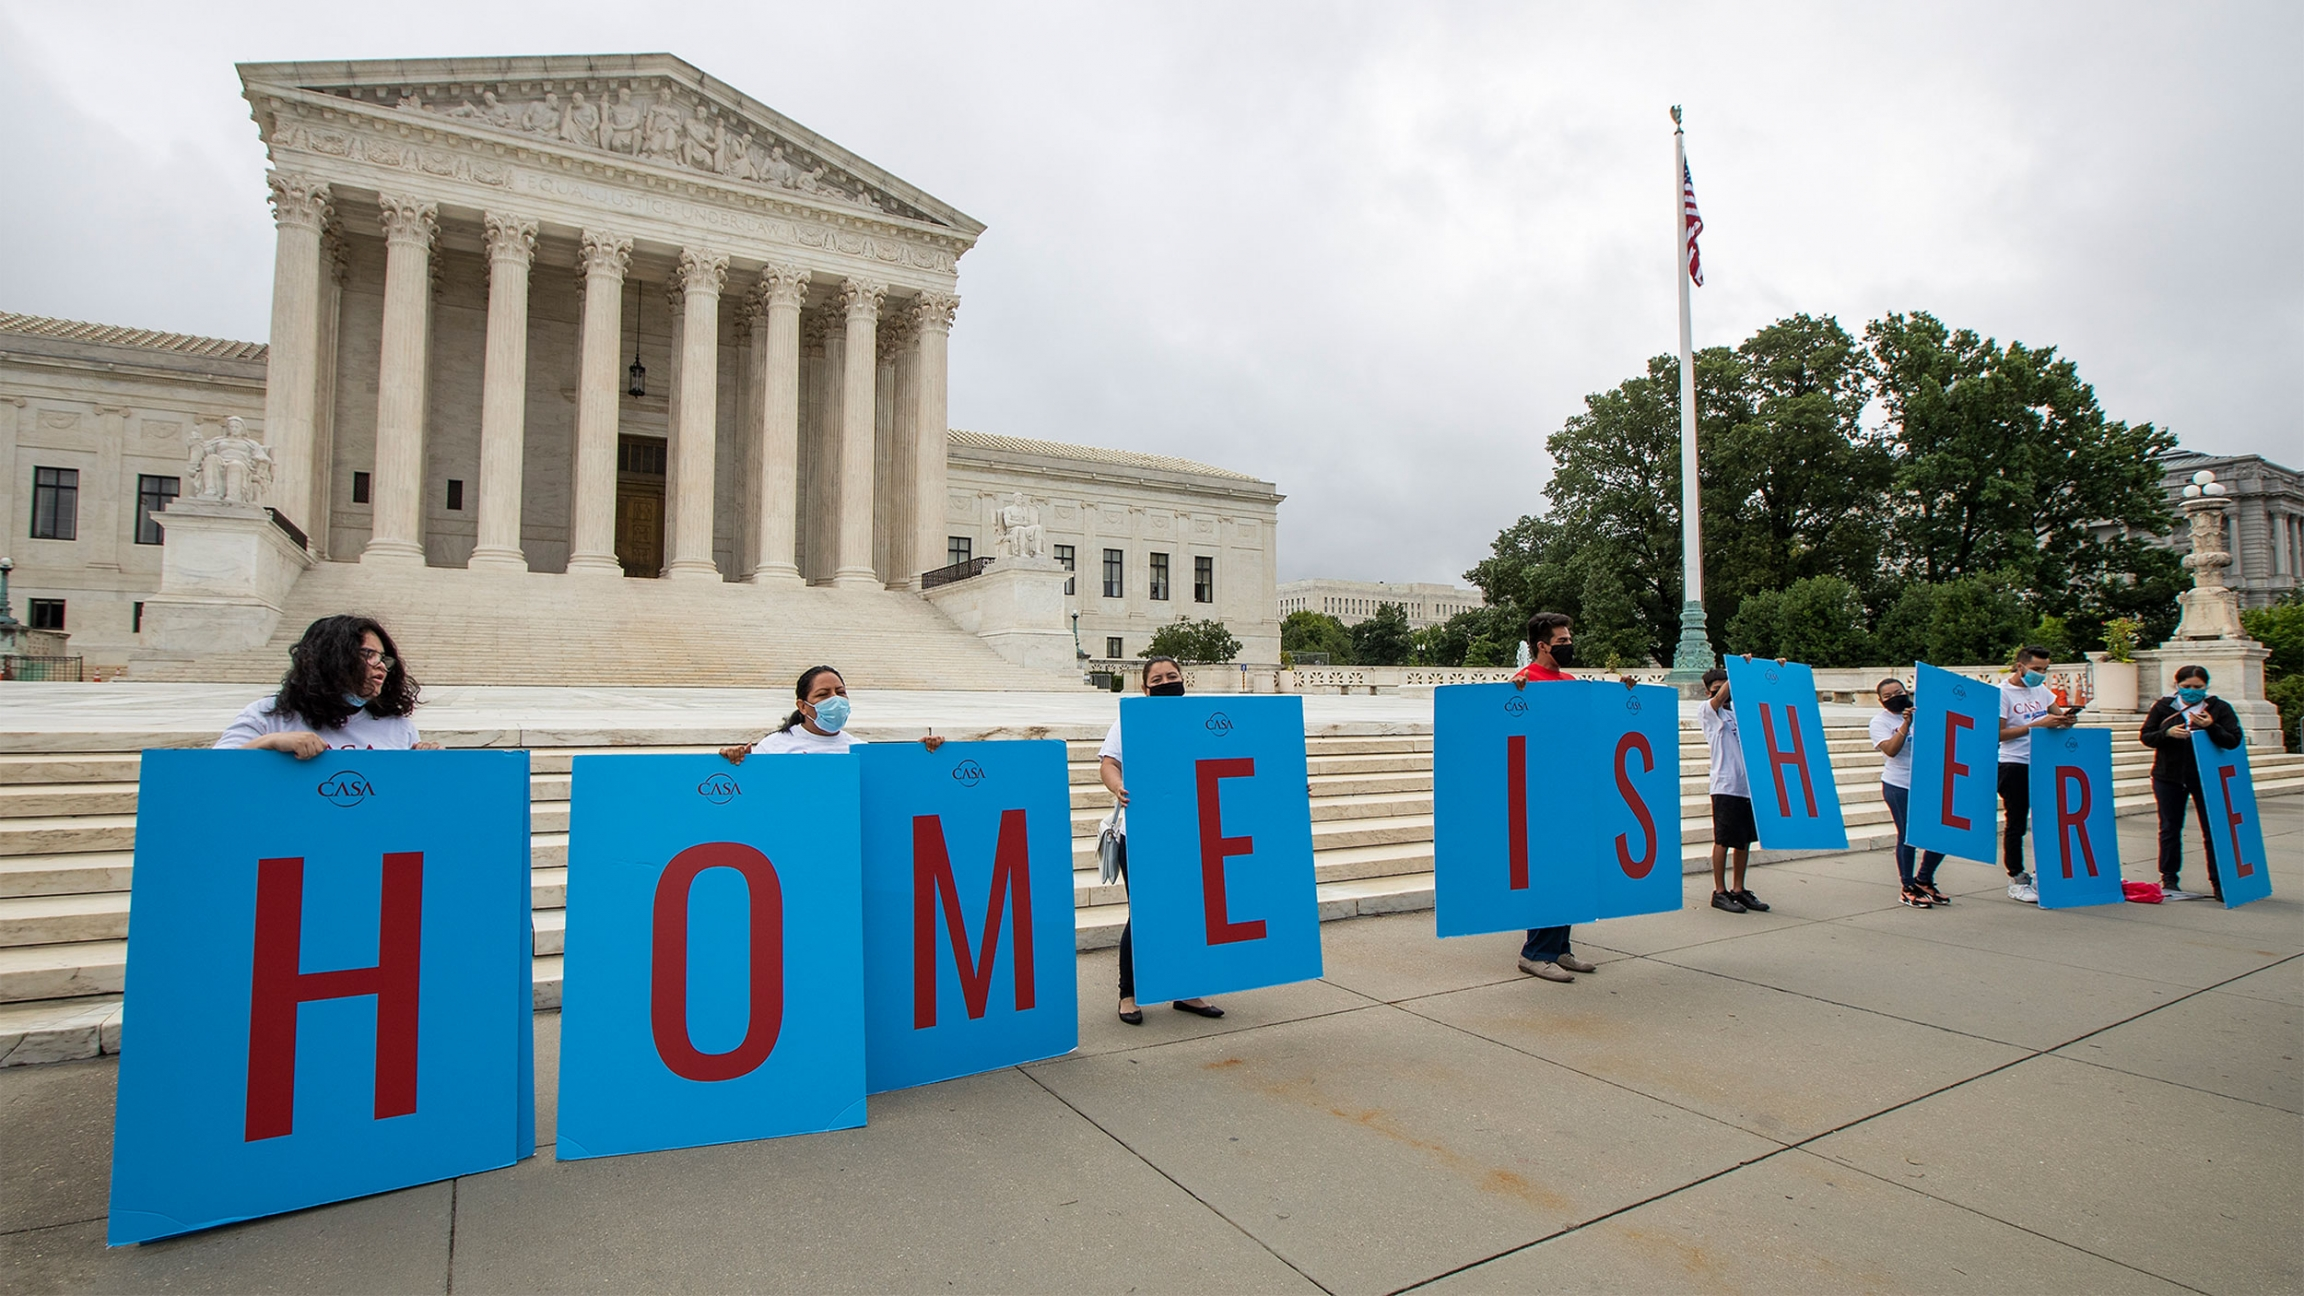 """Students stand in a line in front of the US Supreme Court with signs that read """"Home is here"""""""